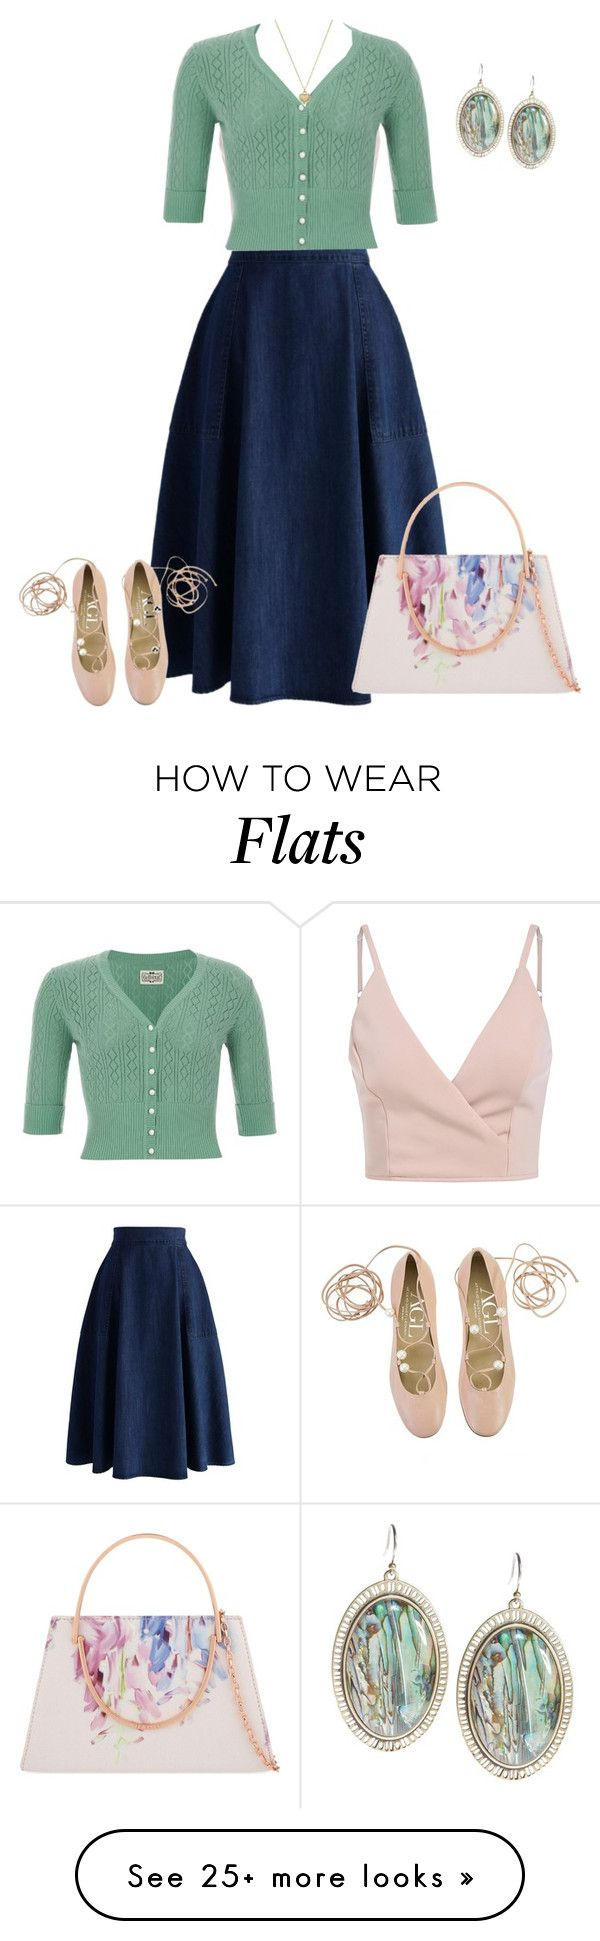 """""""Denim skirt & flats"""" by sherlynd on Polyvore featuring Chicwish, Attilio Giusti Leombruni, Ted Baker, Lucky Brand and Michael Kors"""